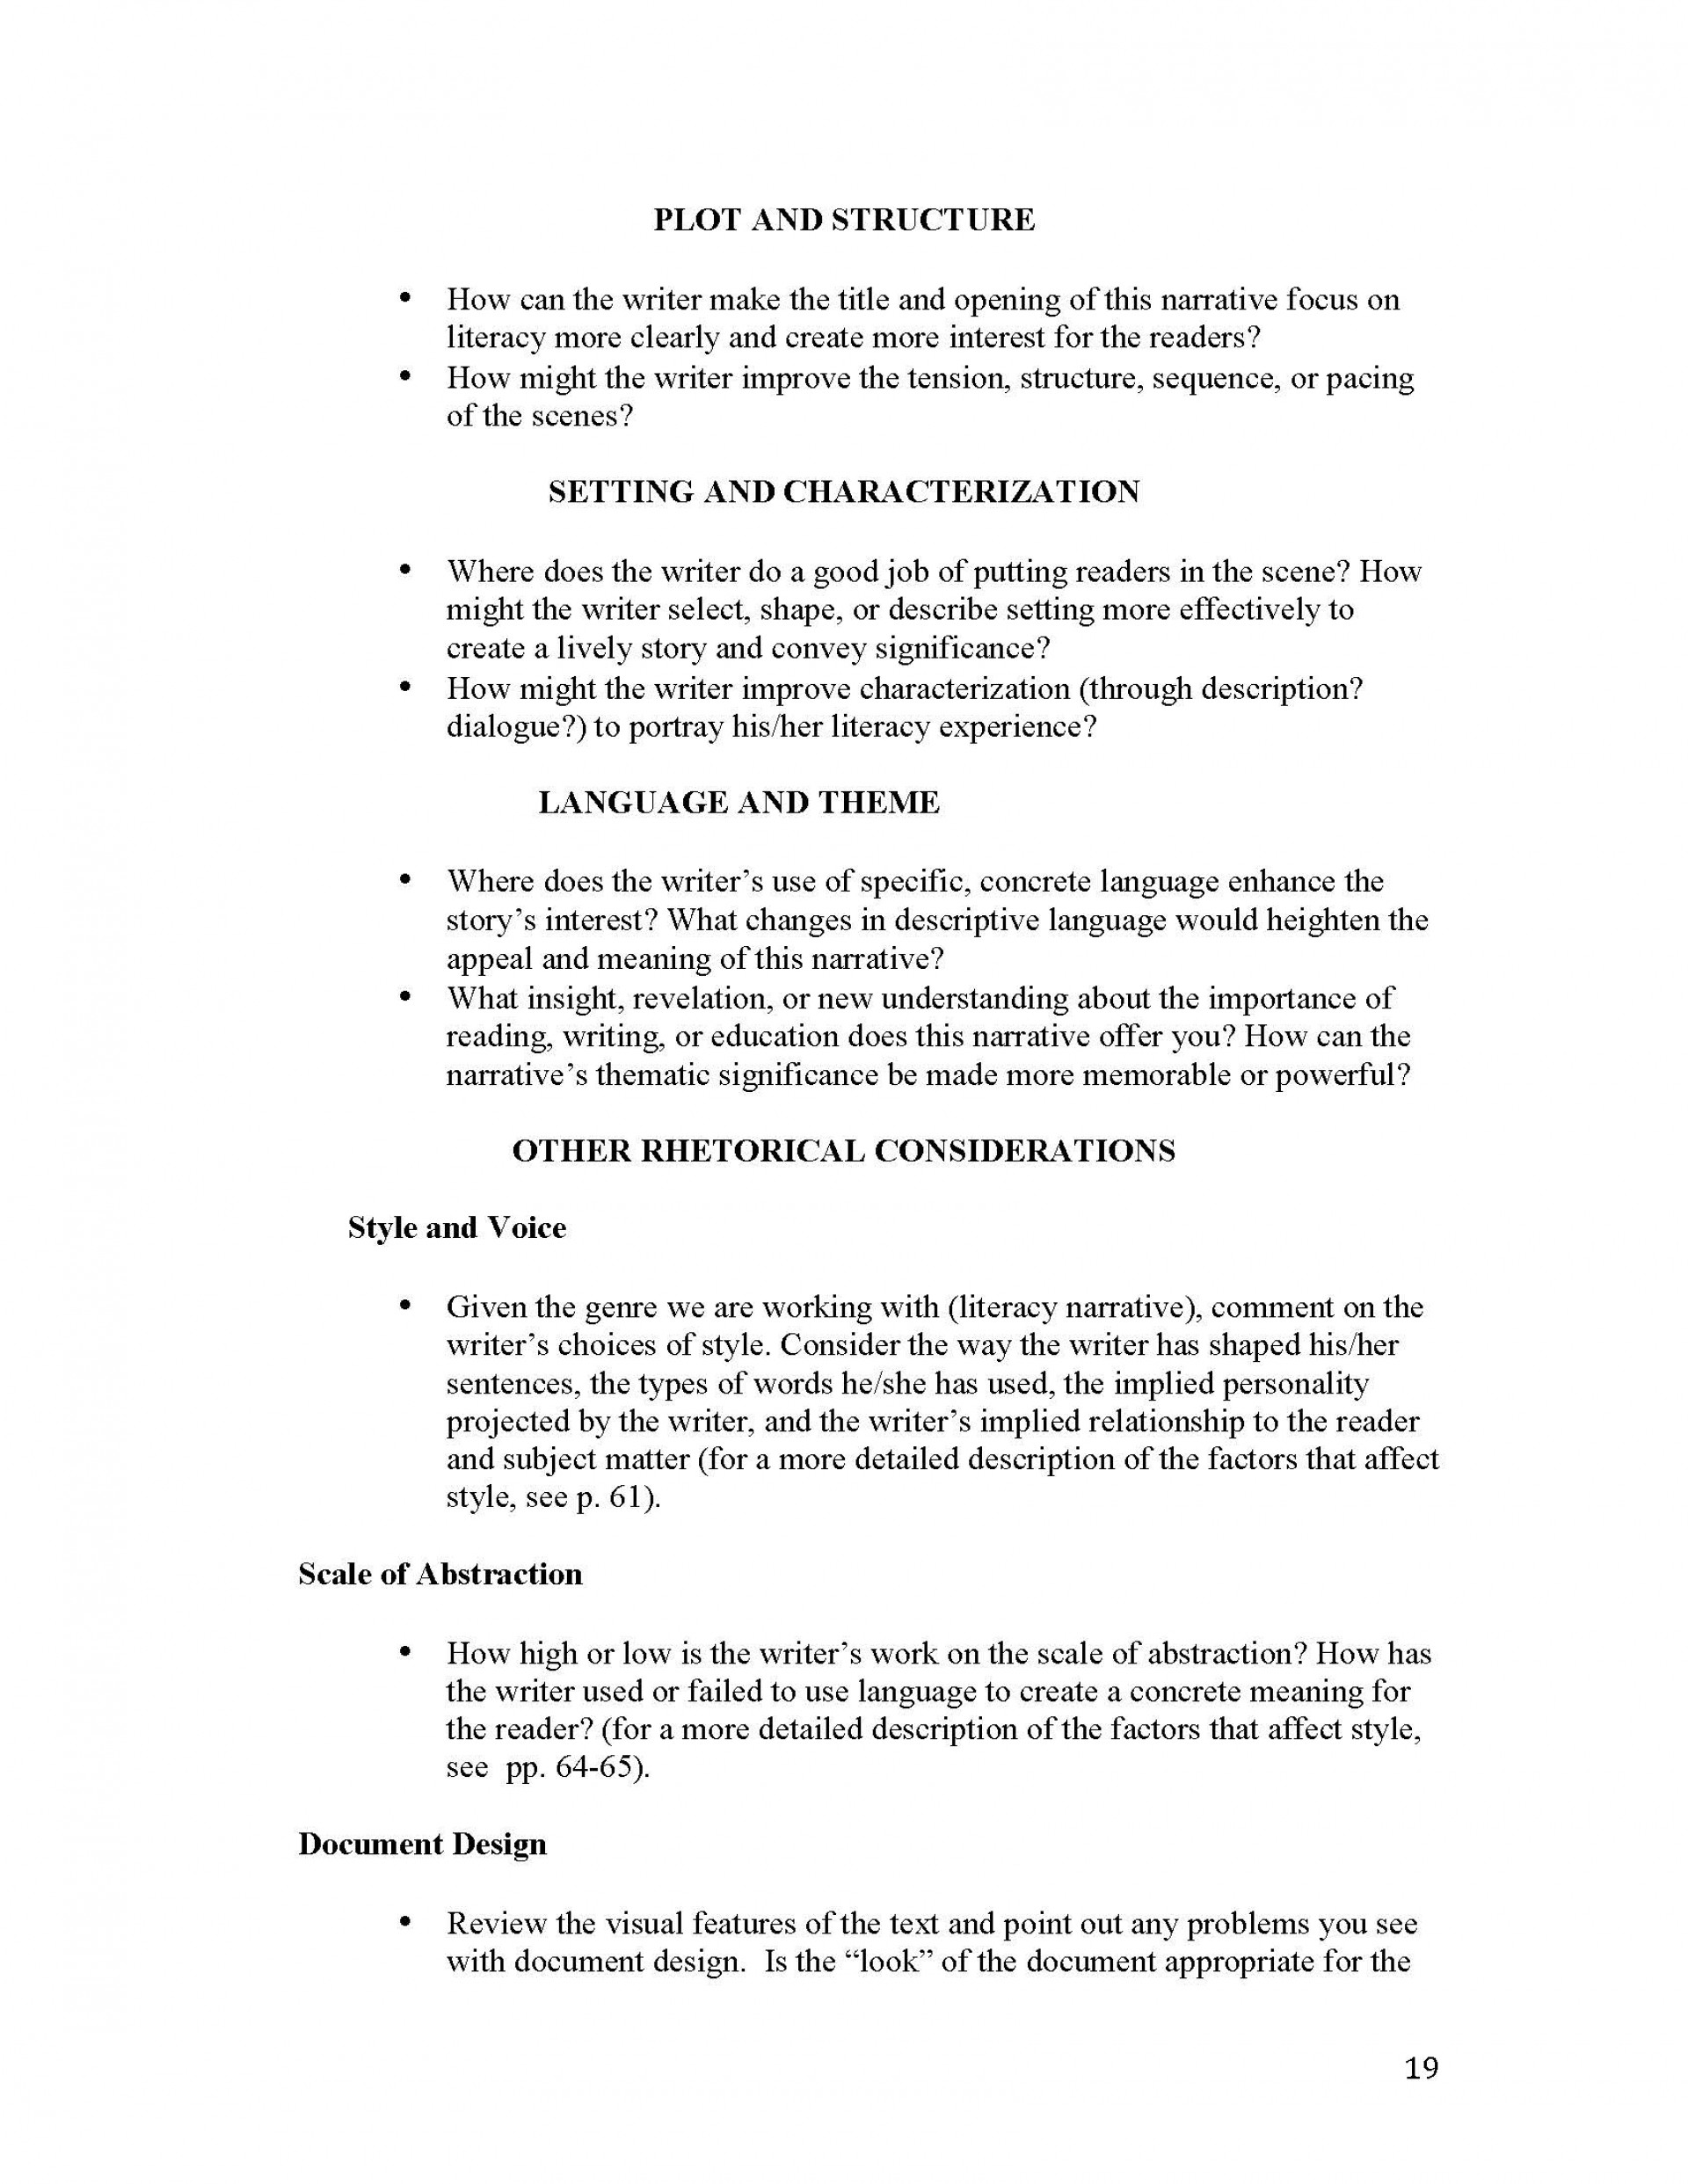 006 Unit 1 Literacy Narrative Instructor Copy Page 19 Argumentative Essay Definition Fearsome Wikipedia Define Format & Examples 1920